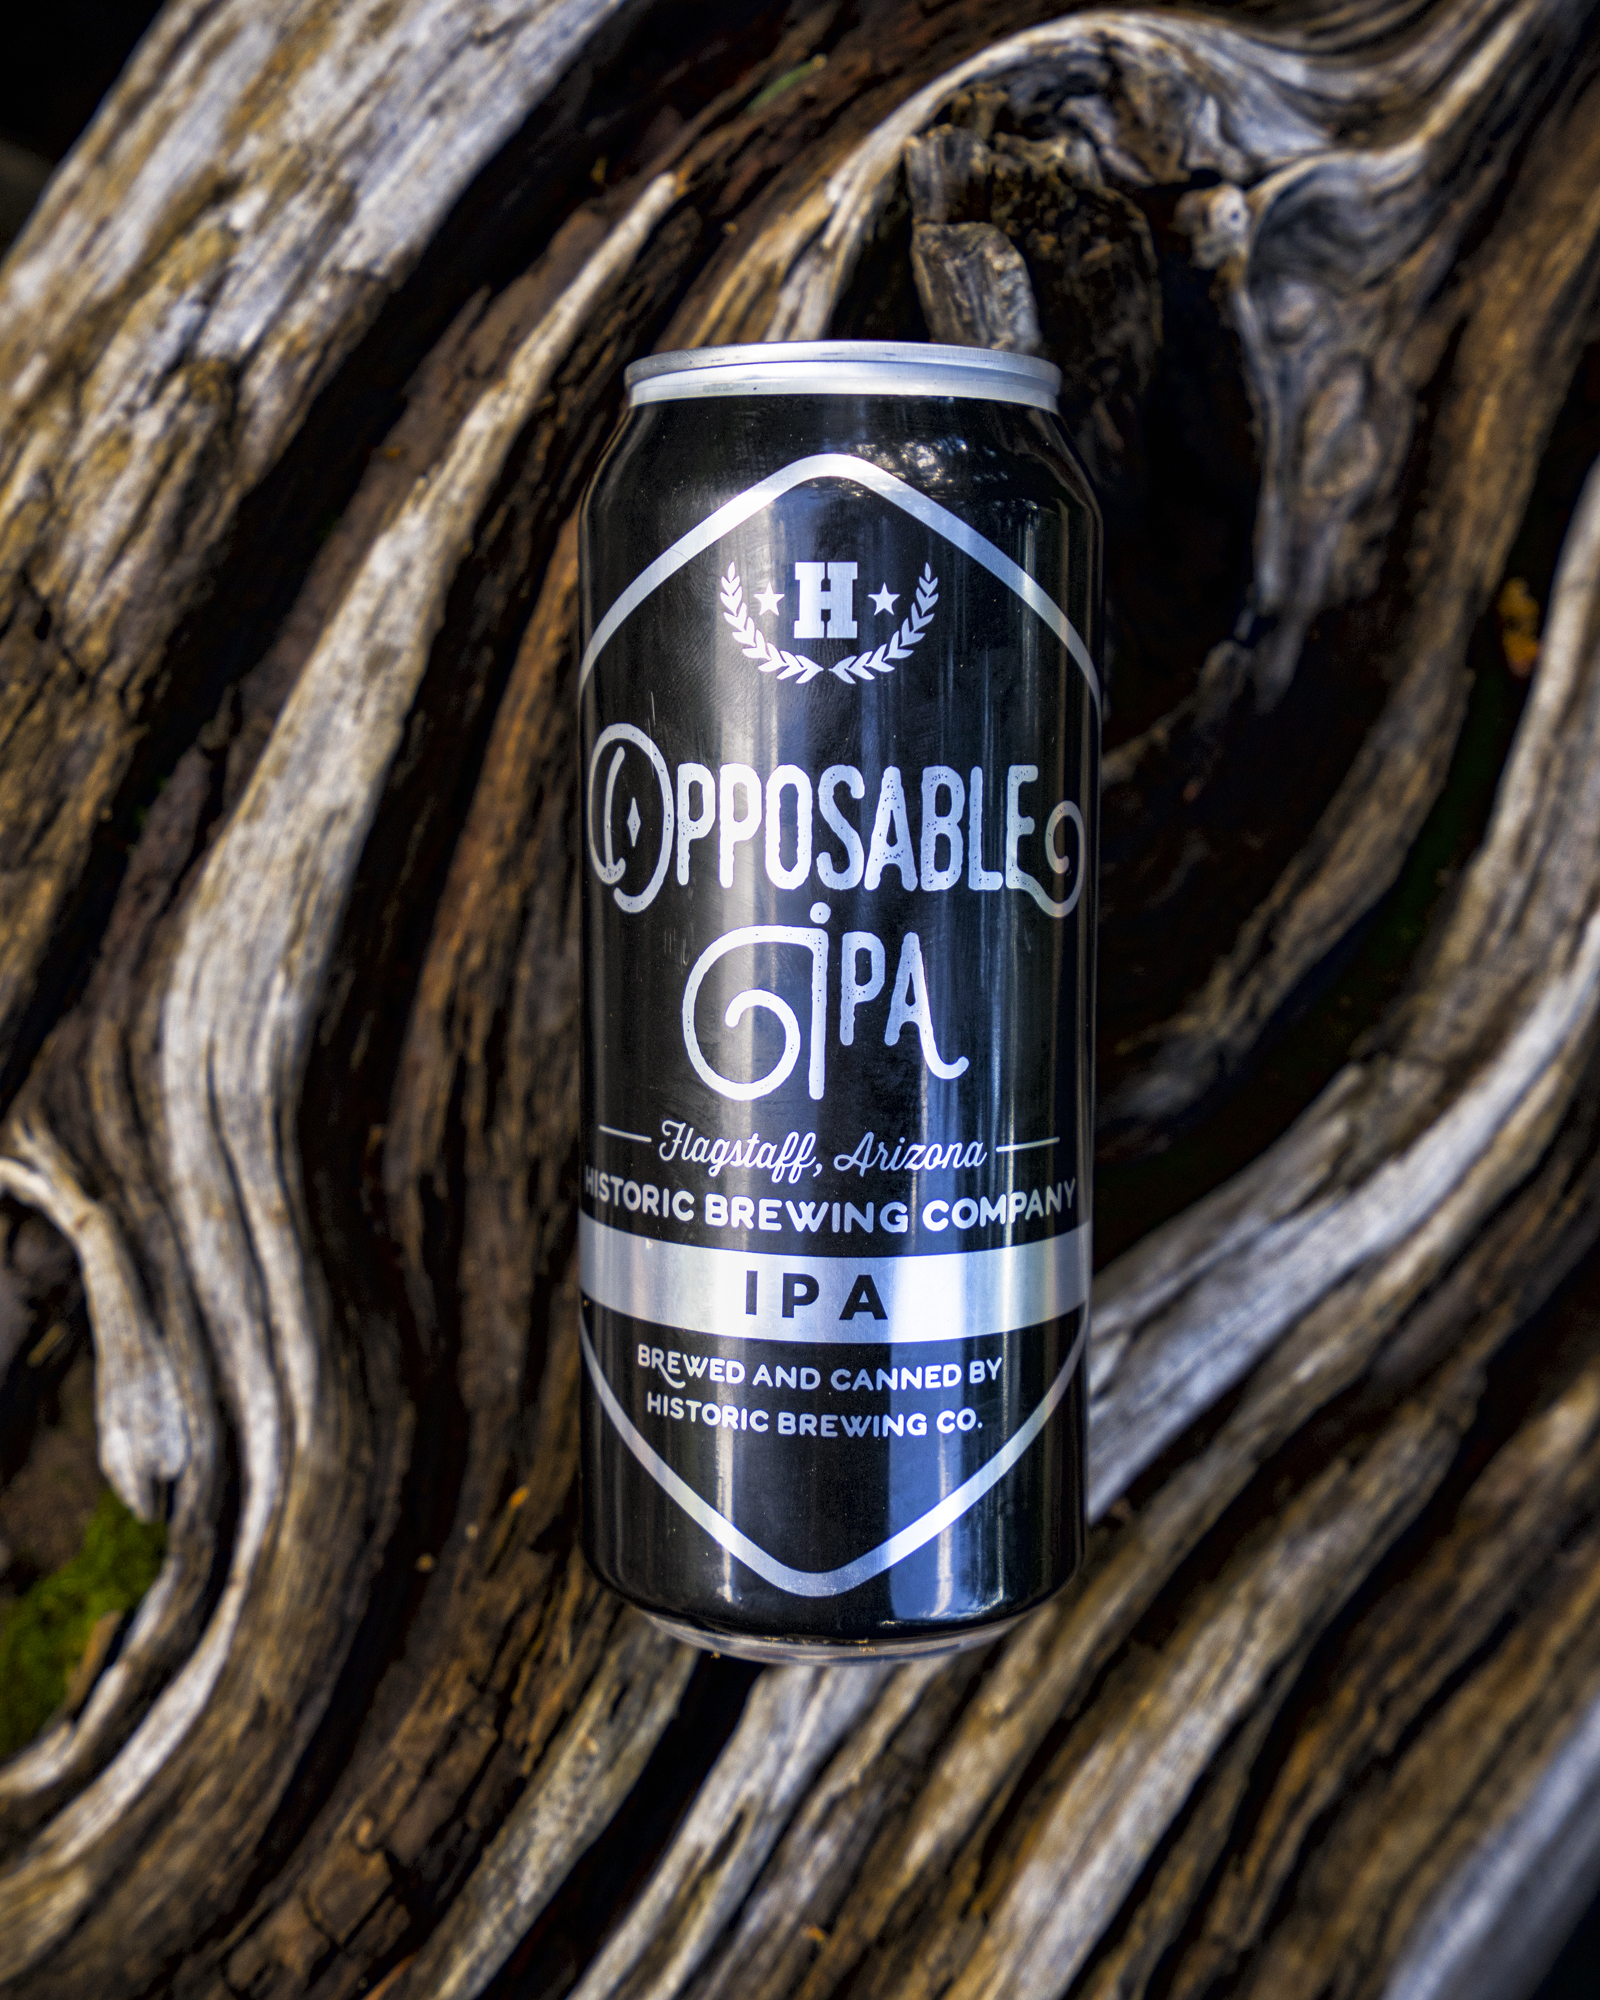 Opposable IPA Beer Chili - Prep time: 5 minutesCook time: 30 minutesServes: 8-2 tablespoons of olive oil-1 medium yellow onion, finely chopped-2 garlic cloves, minced-1.5 lbs of ground beef or turkey-5 tablespoons of chili powder-2 teaspoons of cumin-1 tablespoon of paprika-1-2 teaspoons of salt-1 teaspoon of cayenne pepper-1 14 oz can of crushed tomatoes-1 14 oz can of diced tomatoes-1 can of kidney beans-12 oz of Opposable IPA beer1. In a large pot add your olive oil, garlic, and chopped onion and saute until translucent2. Add in your ground meat and spices and brown until meat is fully cooked3. Add in your beans, tomatoes, and beer, mix all ingredients together, and simmer for 20-25 minutes until flavors are combined and all ingredients are heated4. Serve with cheese, sour cream, green onions or any toppings that float your boat5. Have another Opposable IPA with your meal and cheer as loud as you can for the winning team